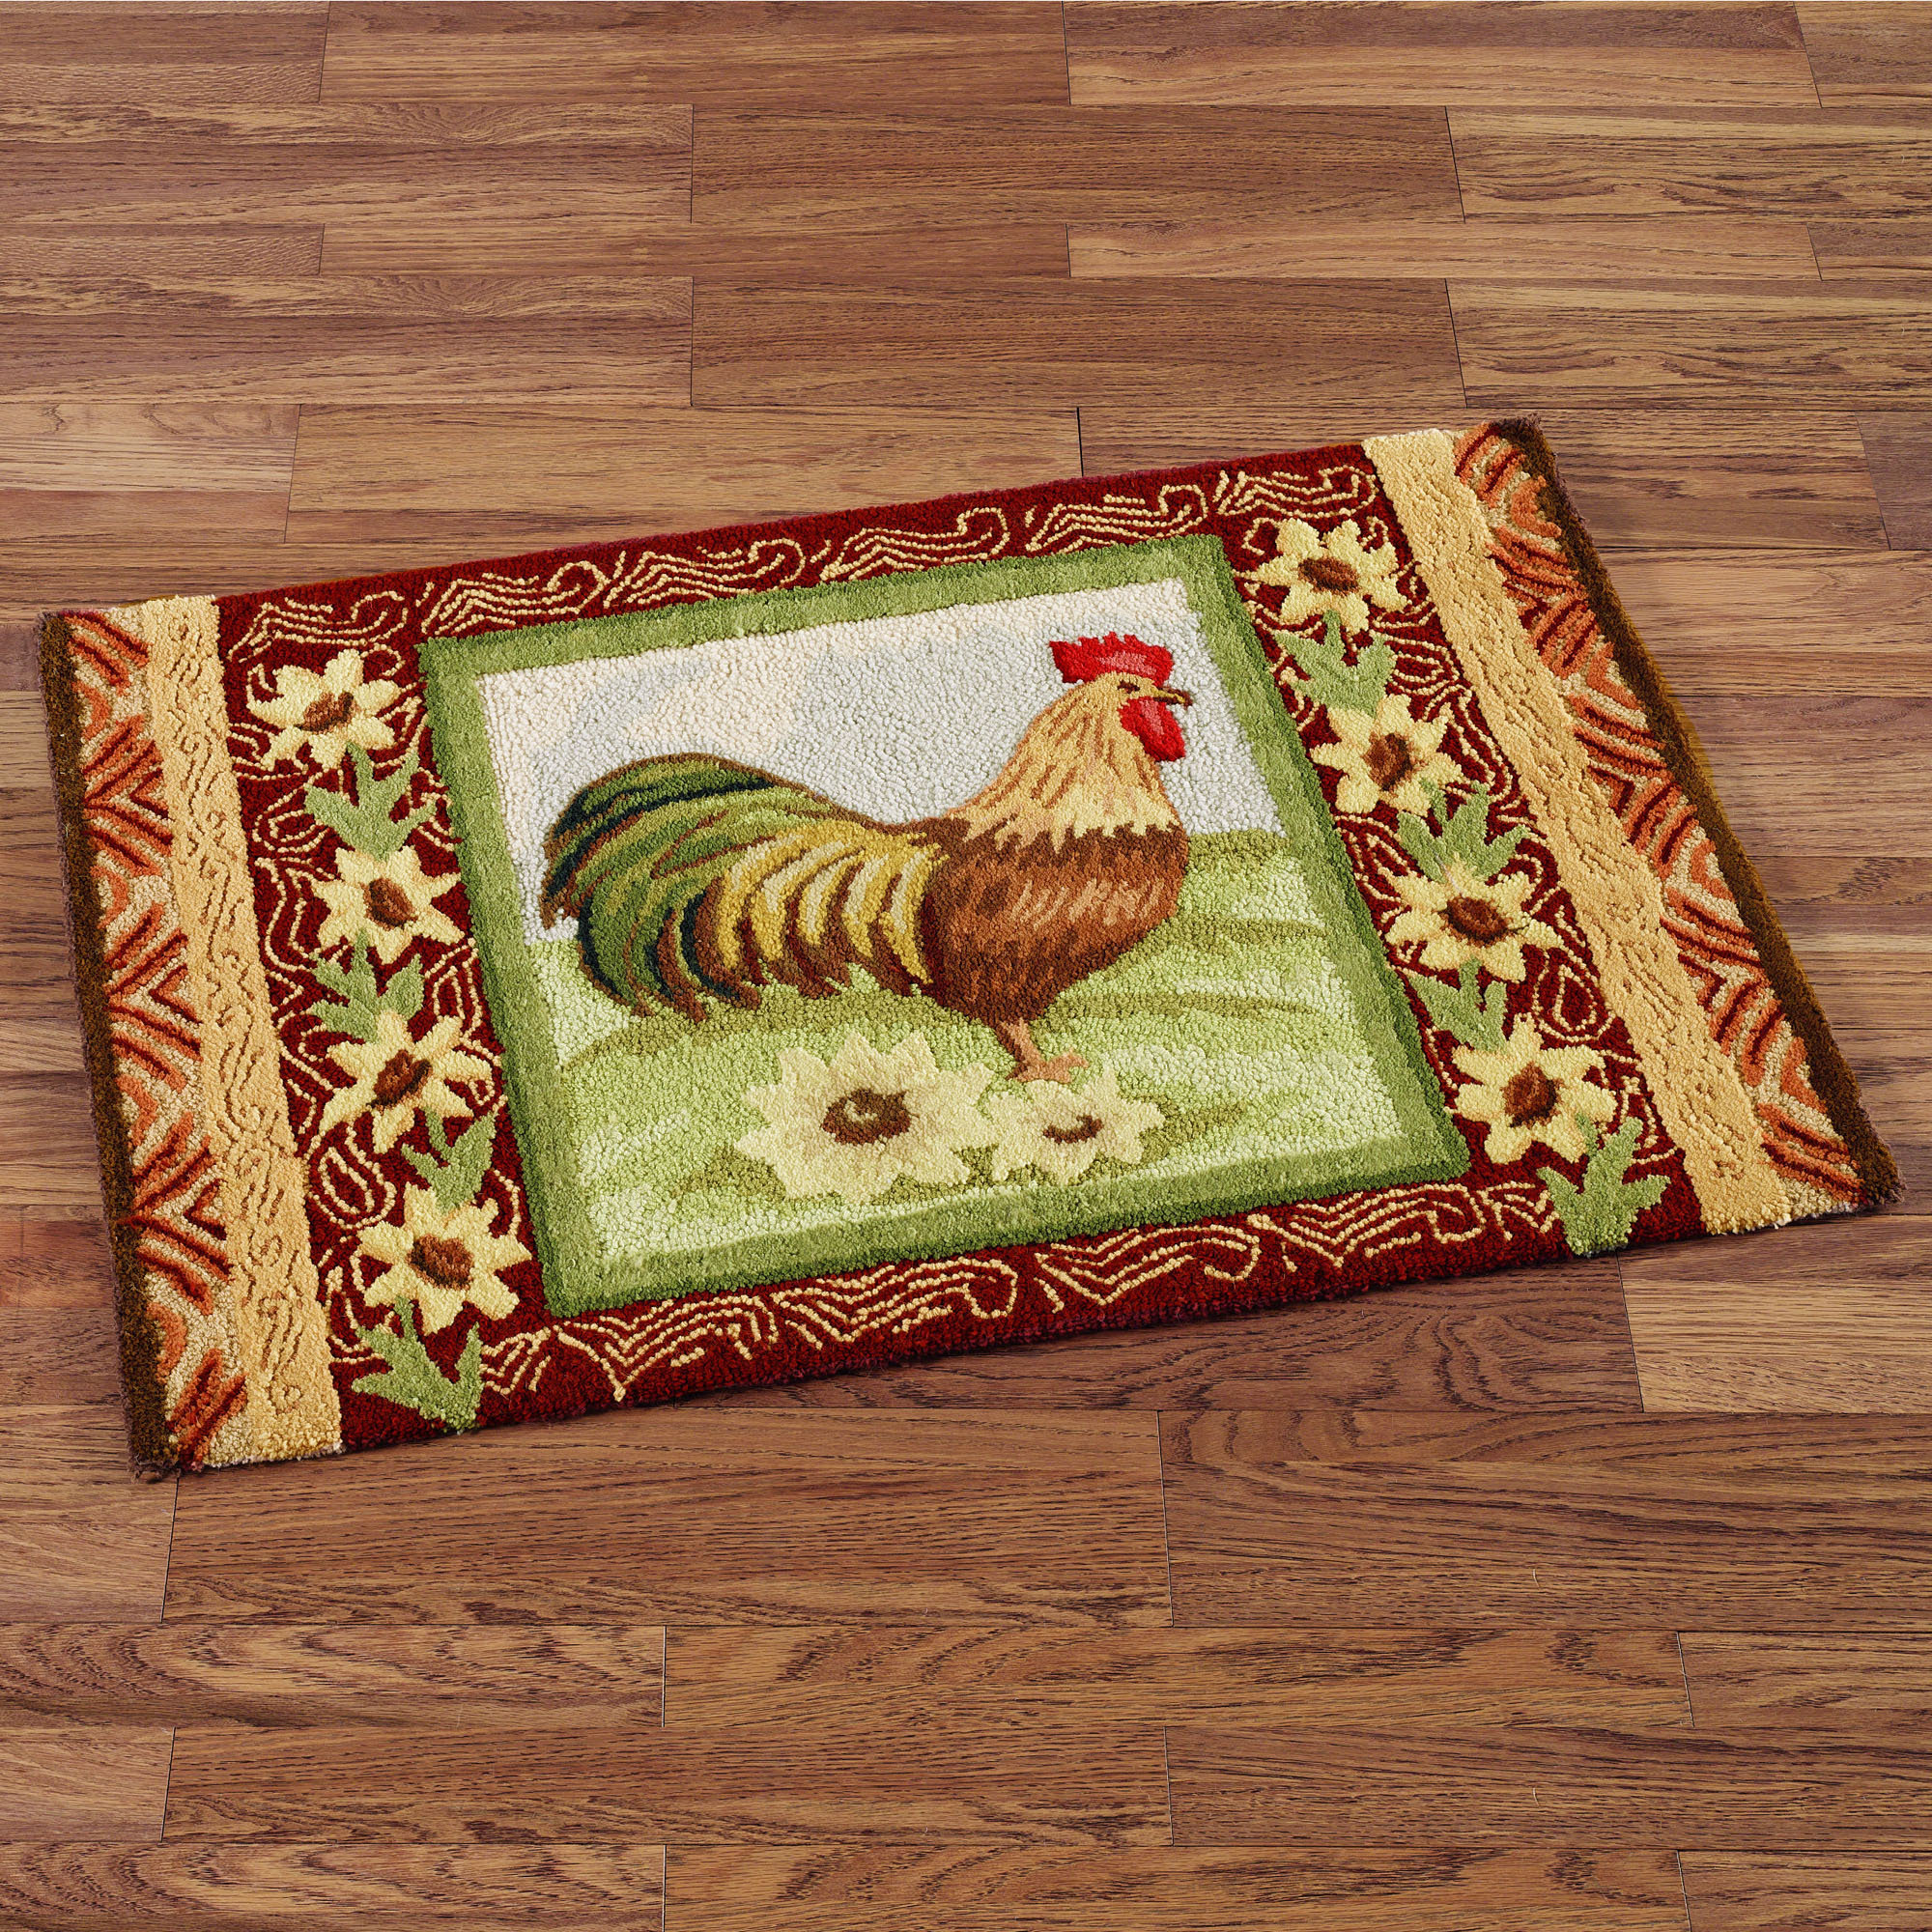 Country Kitchen Floor Mats